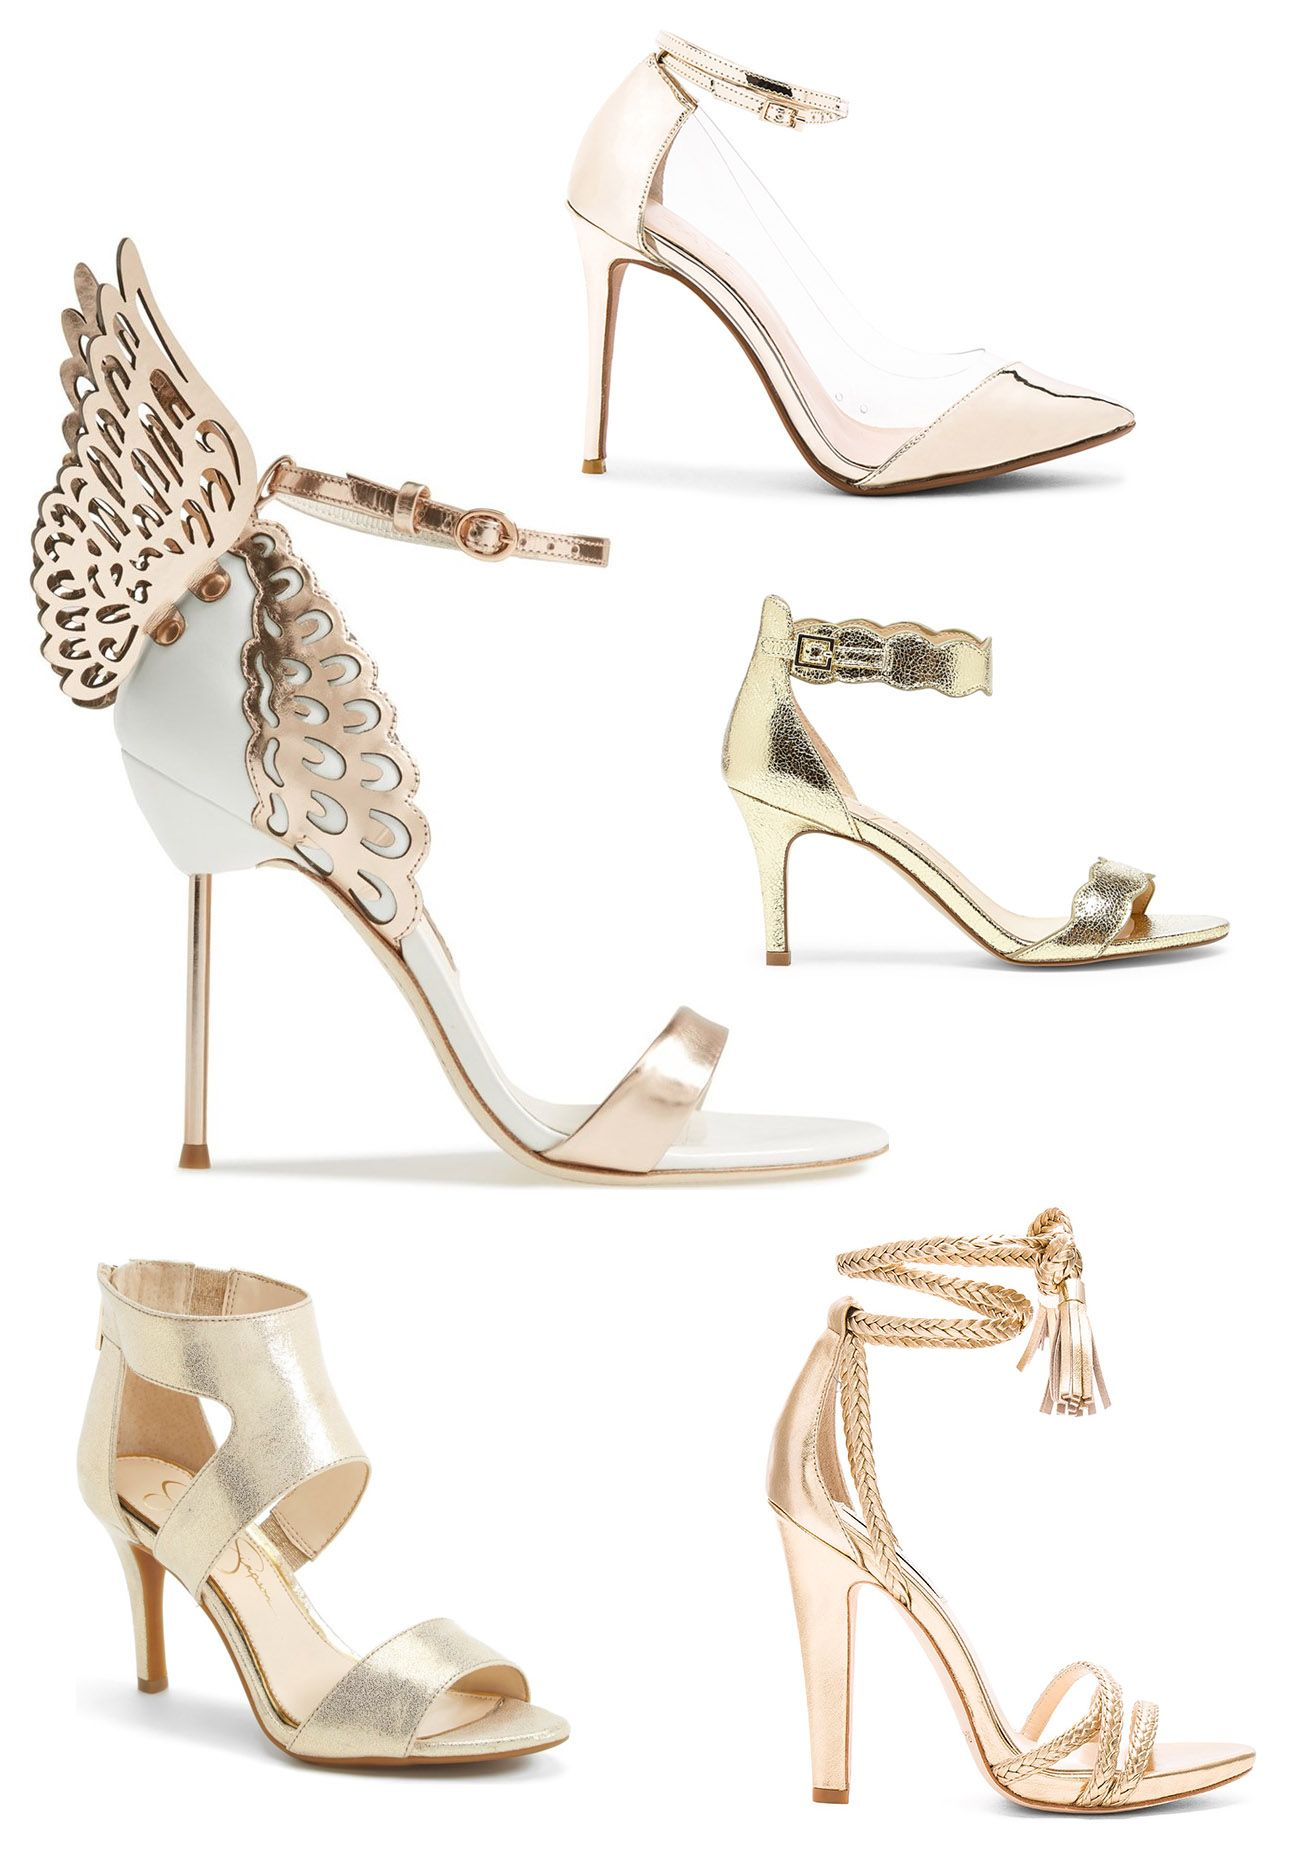 48212f17af8a The best metallic heels for events + everyday Bridal Heels